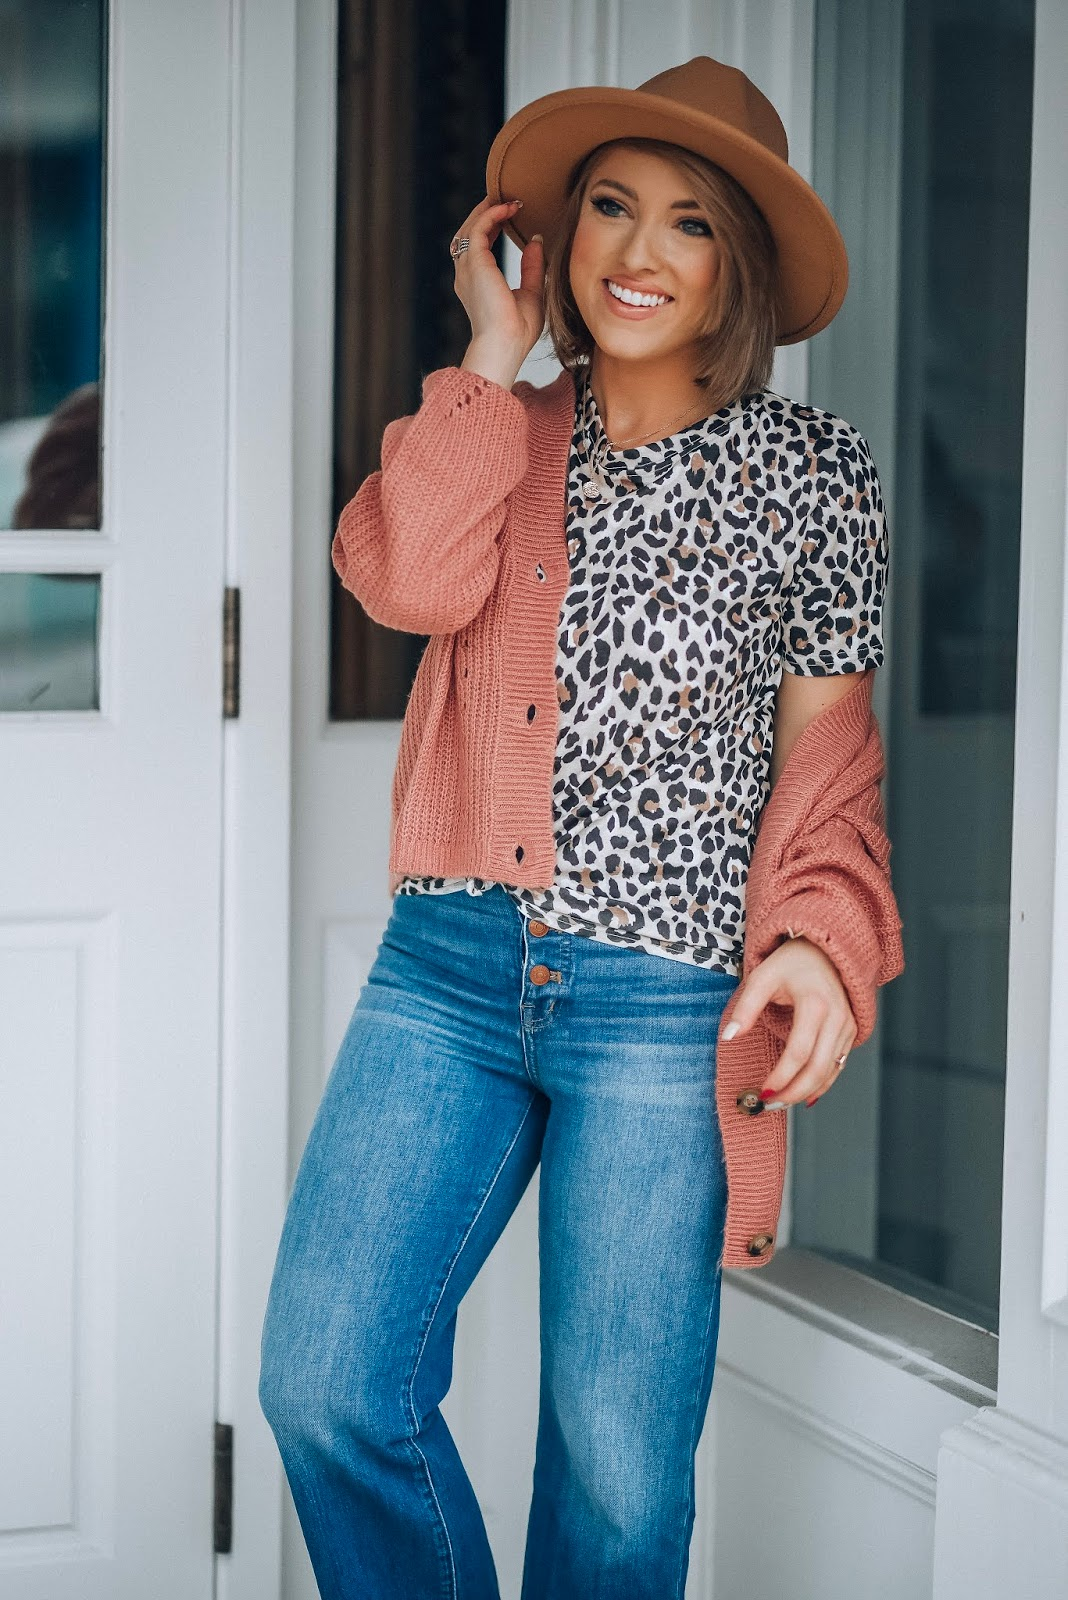 Mauve, Leopard and Flared Cropped Jeans - Fall Style 2019 - Something Delightful Blog #fallstyle